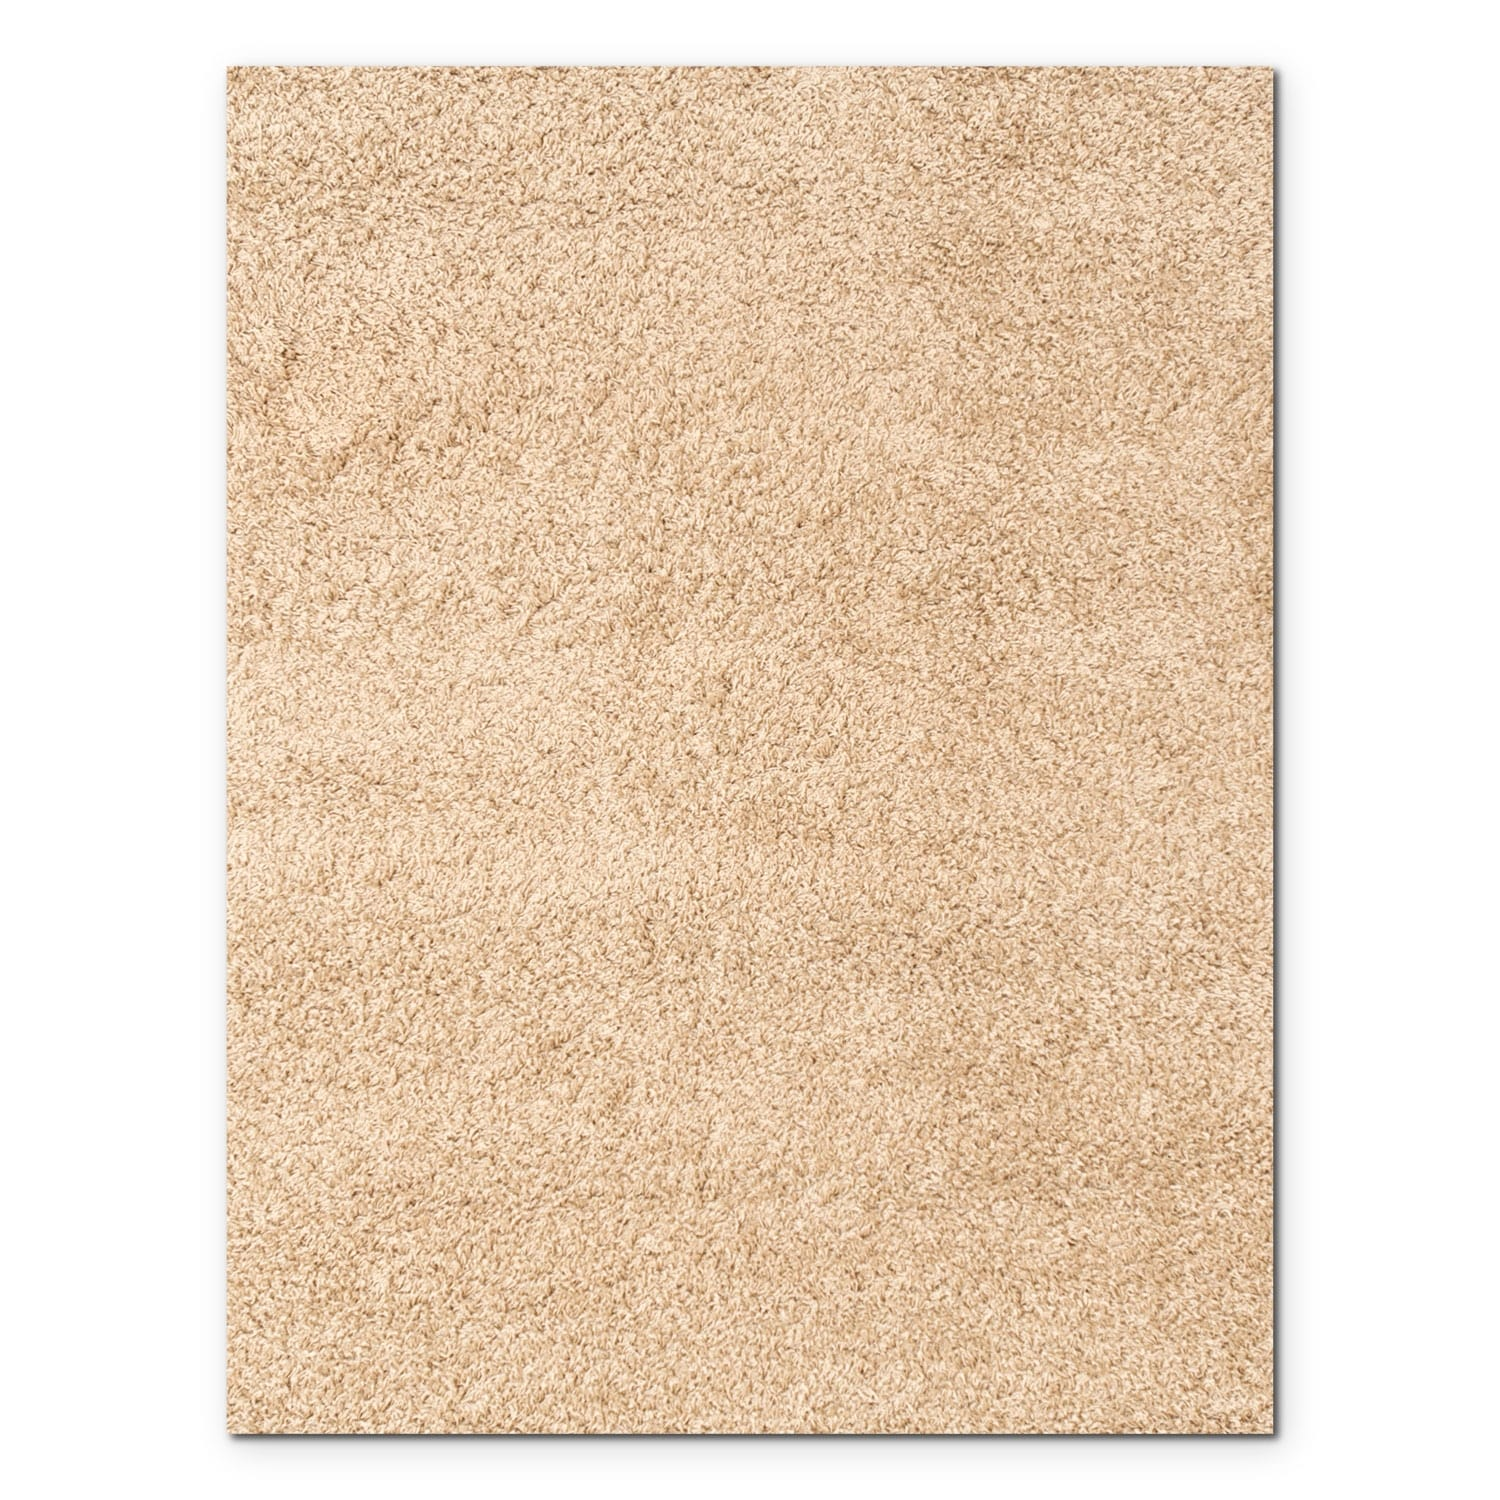 Domino taupe shag area rug 8 39 x 10 39 value city furniture for Living room rugs 8 by 10